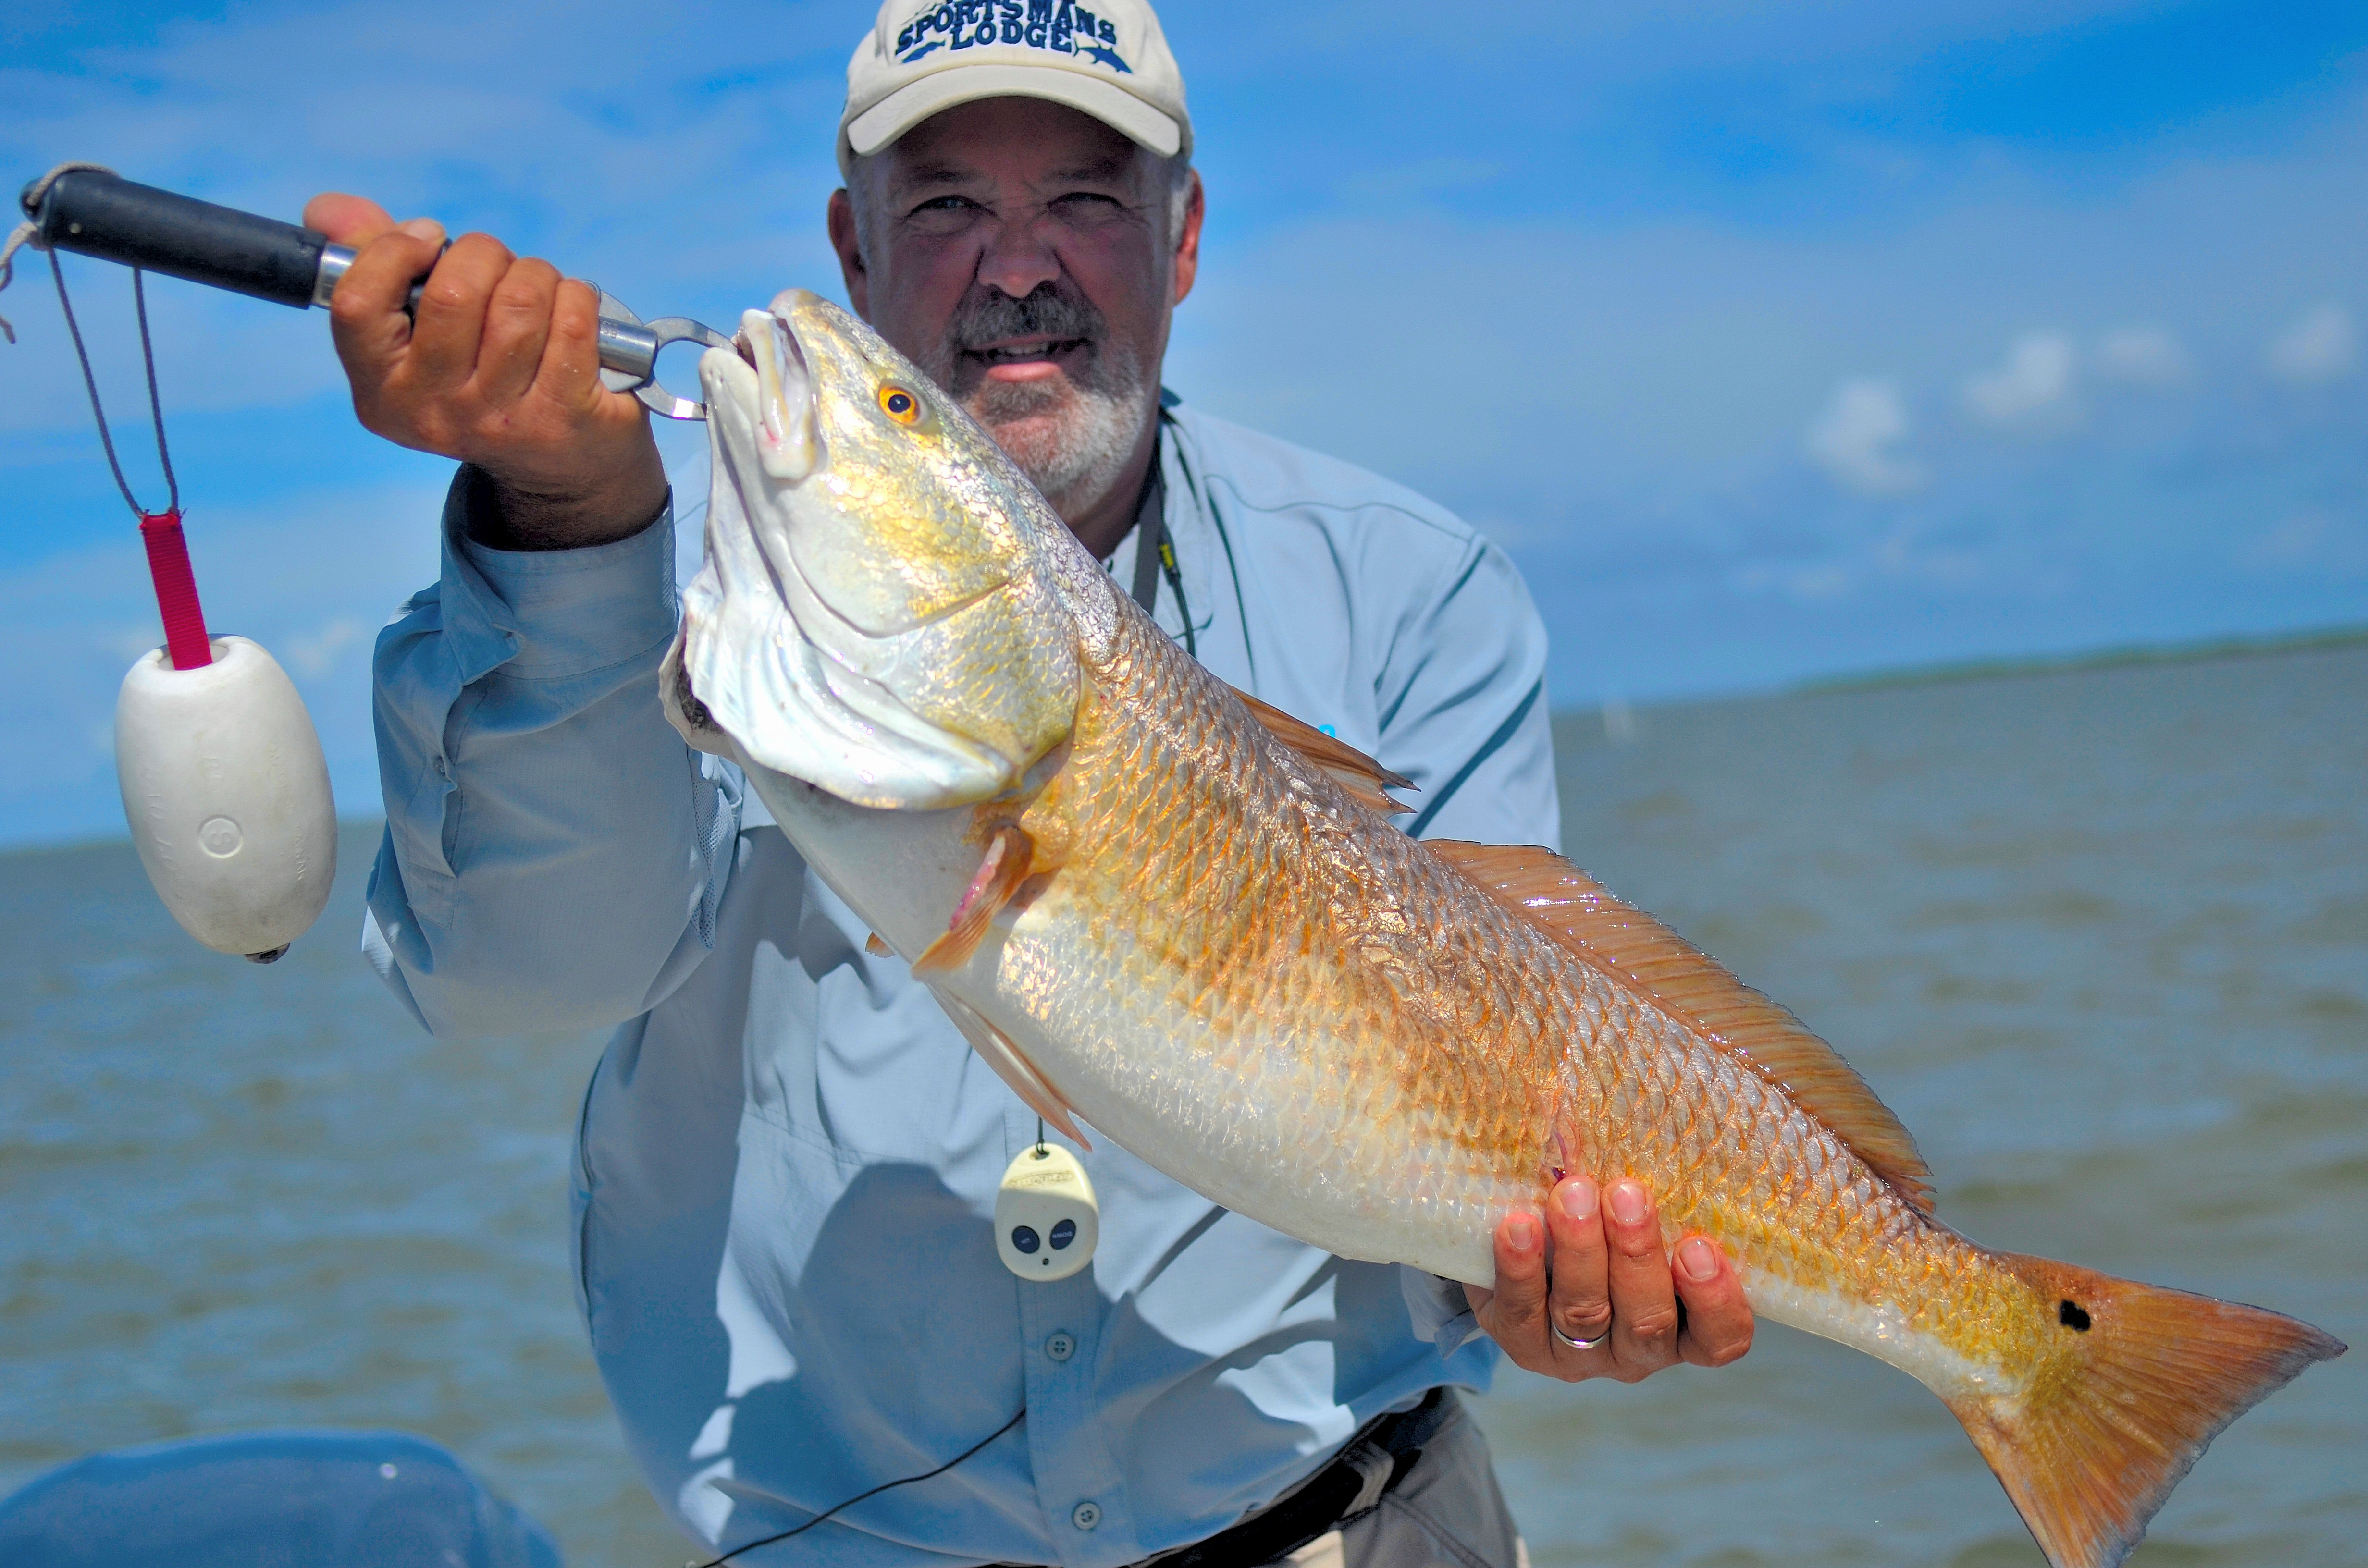 Big bull redfish will be the target for tournament anglers and others during summer's hottest months. Captain Sal Gagliano with Southeast Charters displays a healthy bull red that the coast near Venice is noted for.